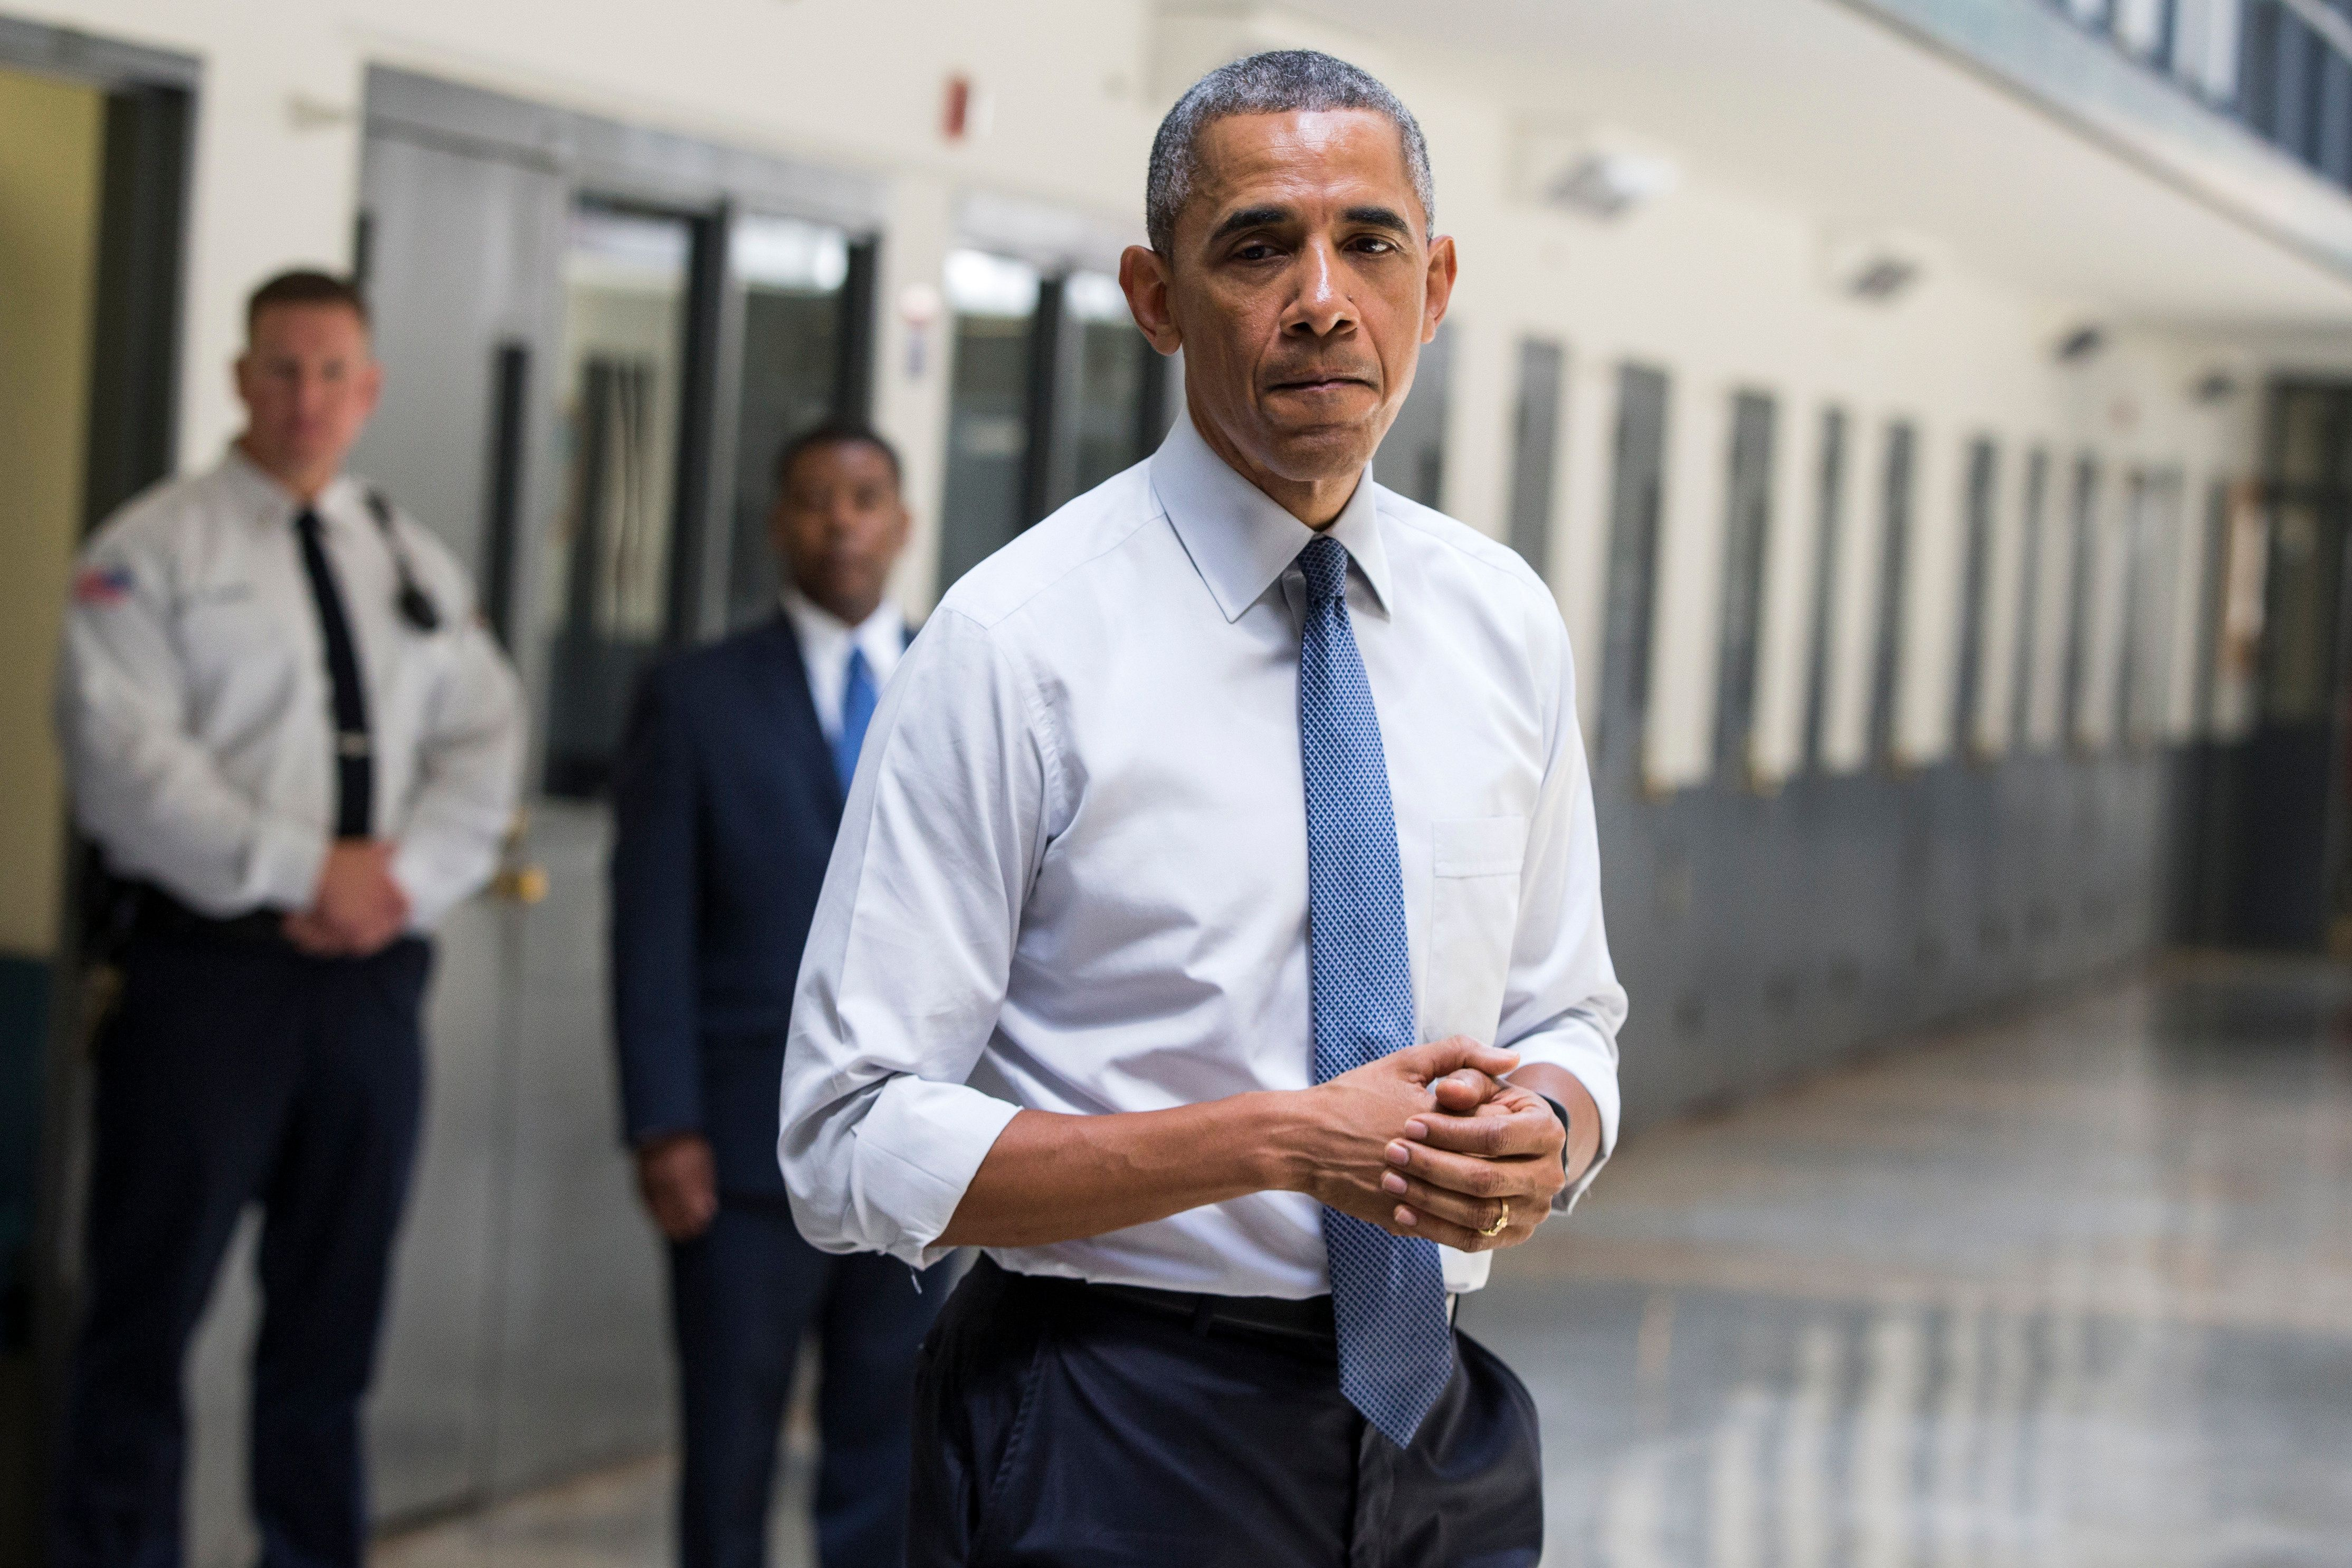 """FILE - In this July 16, 2015 file photo, President Barack Obama pauses as he speaks at the El Reno Federal Correctional Institution in El Reno, Okla. An HBO documentary, """"Fixing the System"""", that features President Obama's historic visit to the prison, and his in-depth conversations with six of the inmates will be premiered Wednesday, Sept. 23, 2015, at the prison before about 100 inmates. (AP Photo/Evan Vucci, file)"""